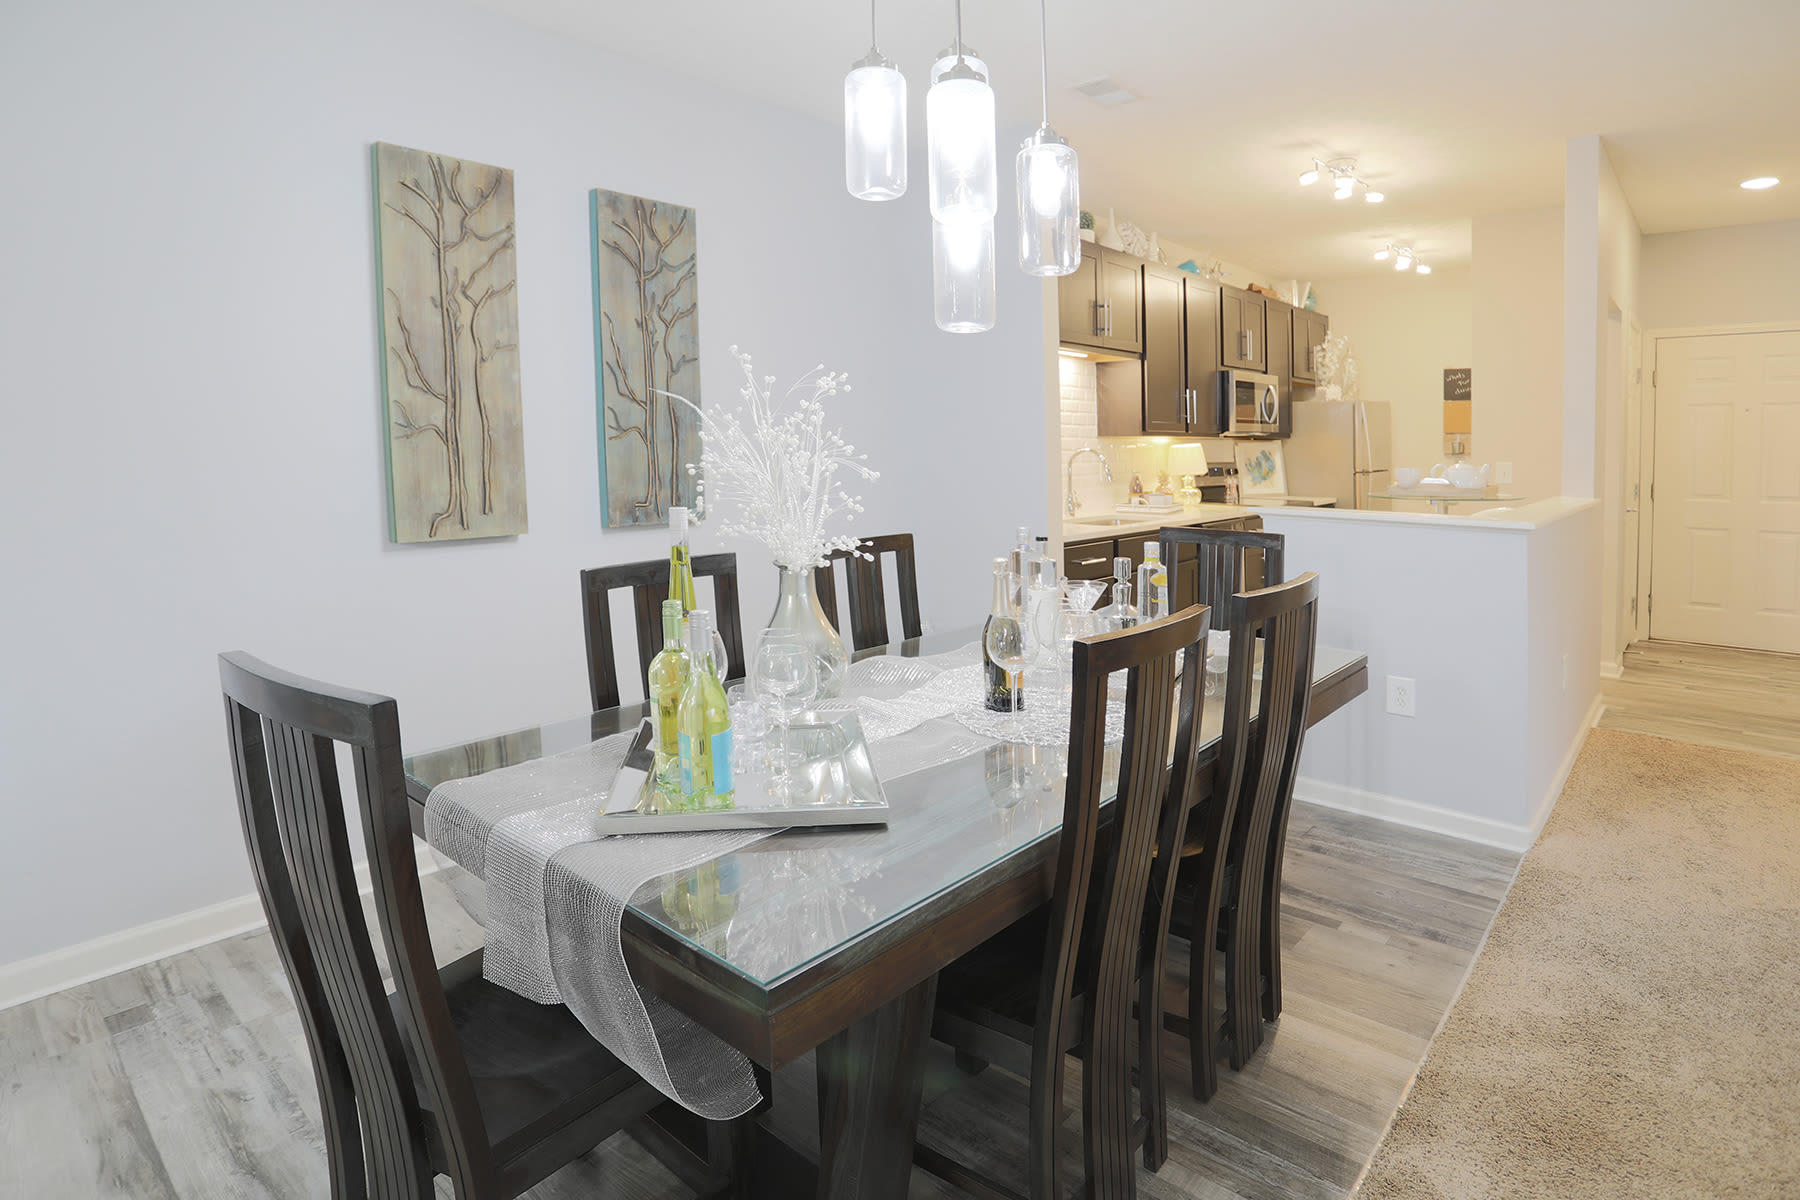 Dining room table and view of kitchen at The Landings at Beckett Ridge in West Chester, Ohio